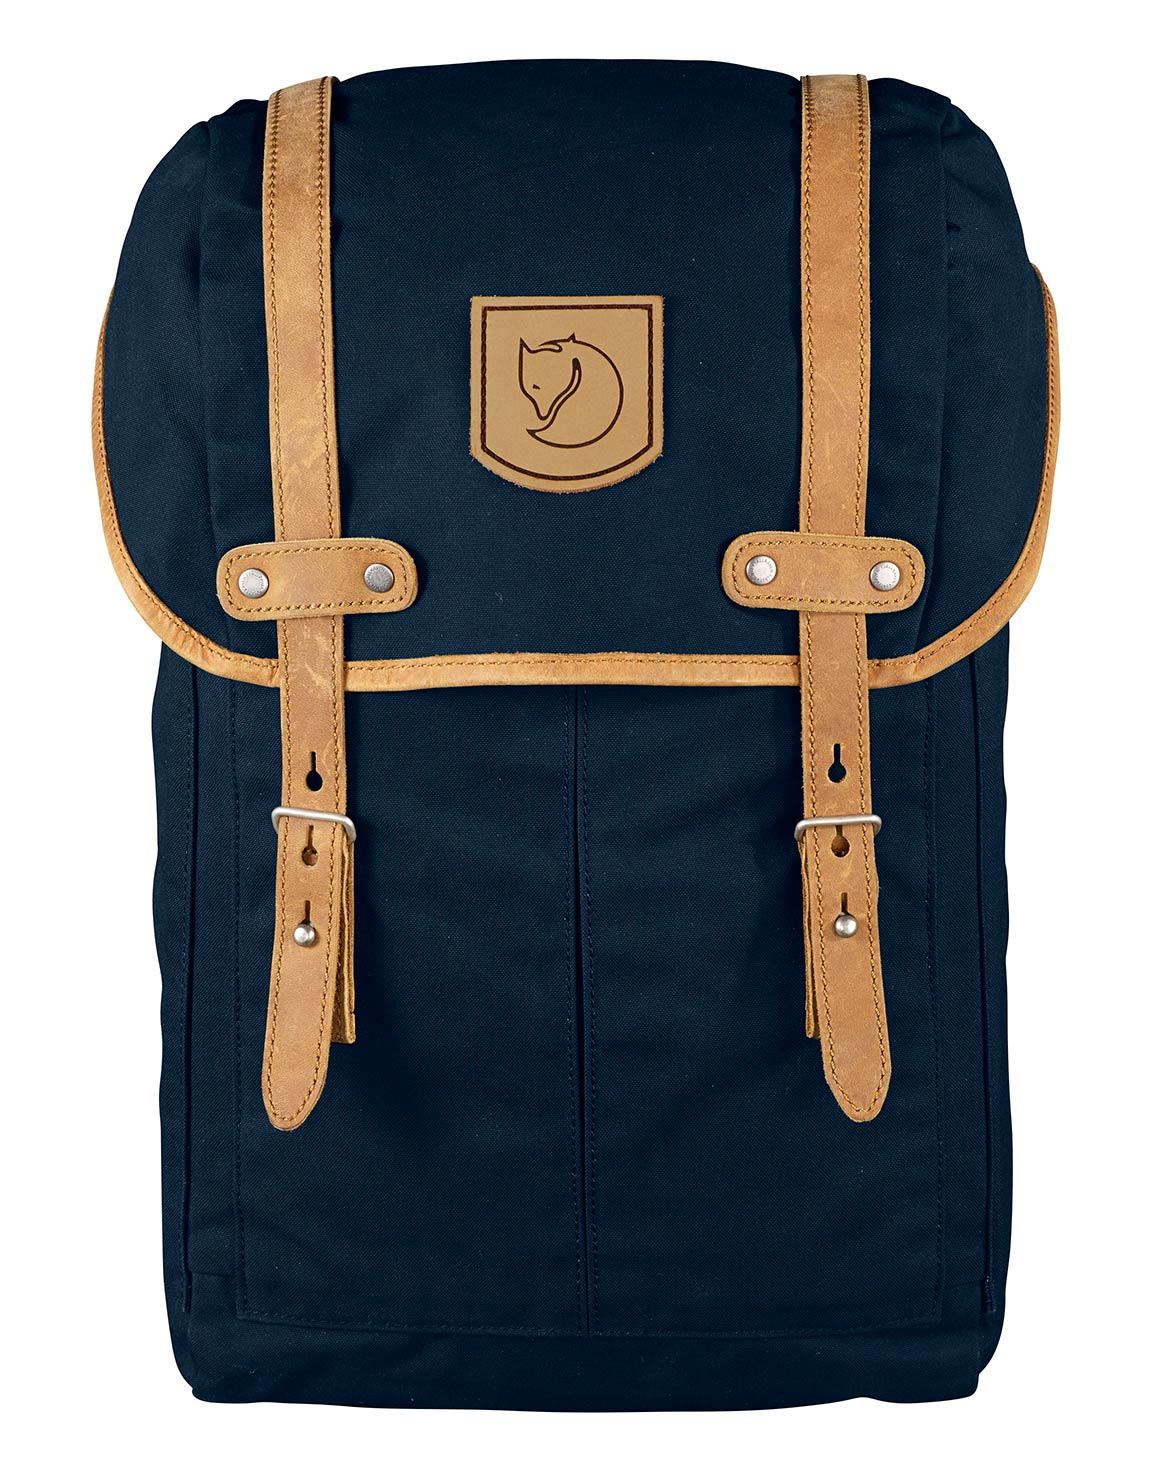 a036526cfbdf The Rucksack No.21 Small is a durable small backpack – Fjällräven